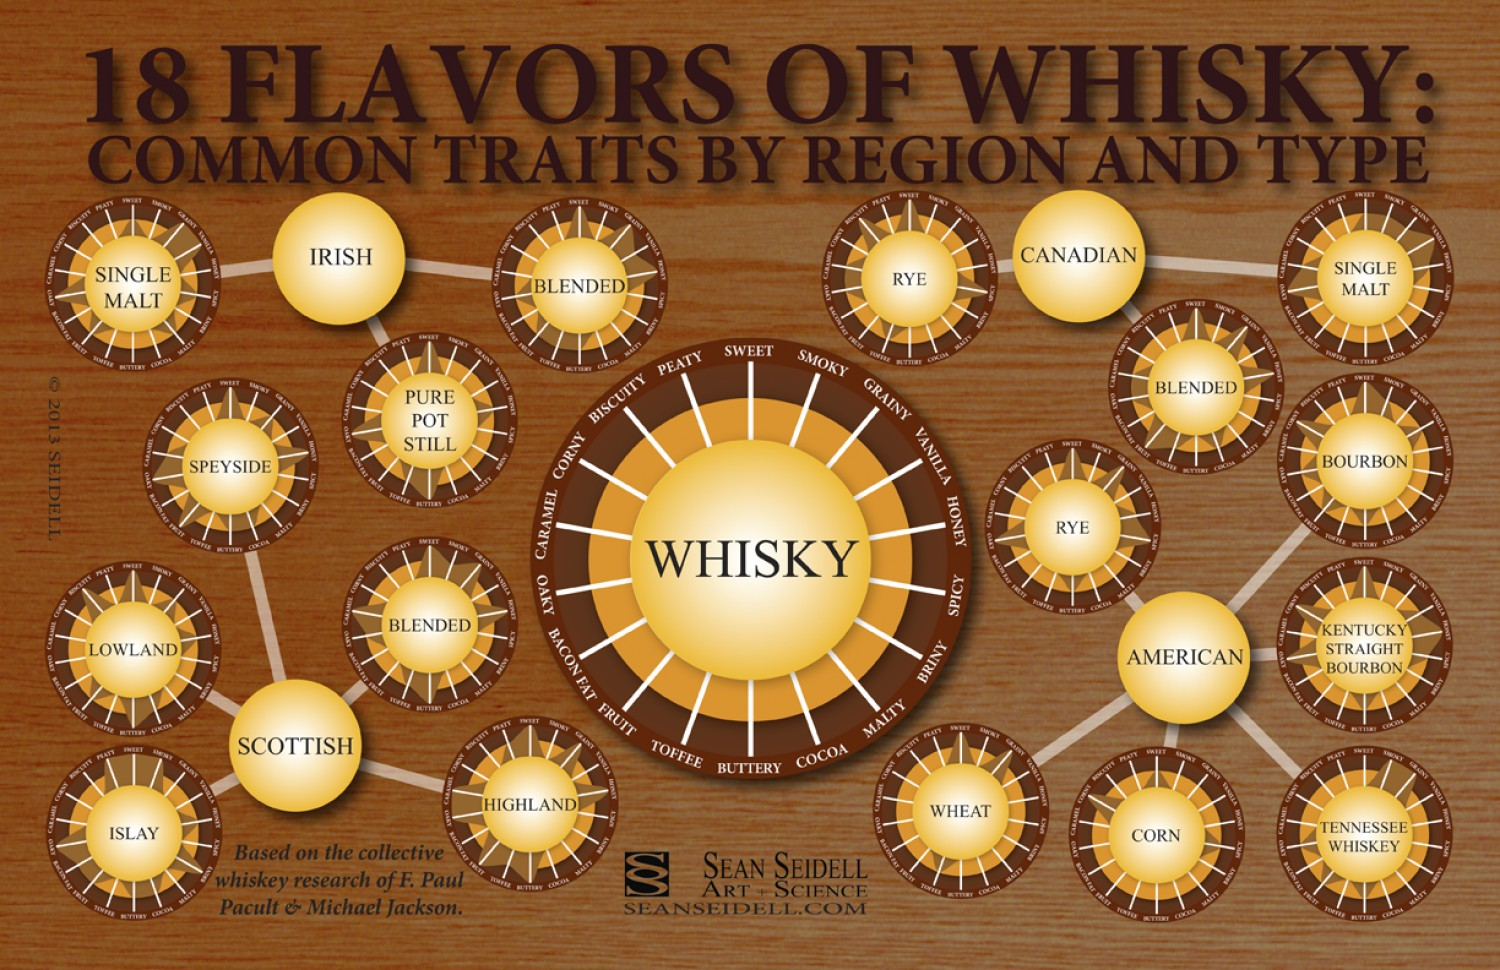 18-flavors-of-whiskey_5127d22ddb7eb_w1500